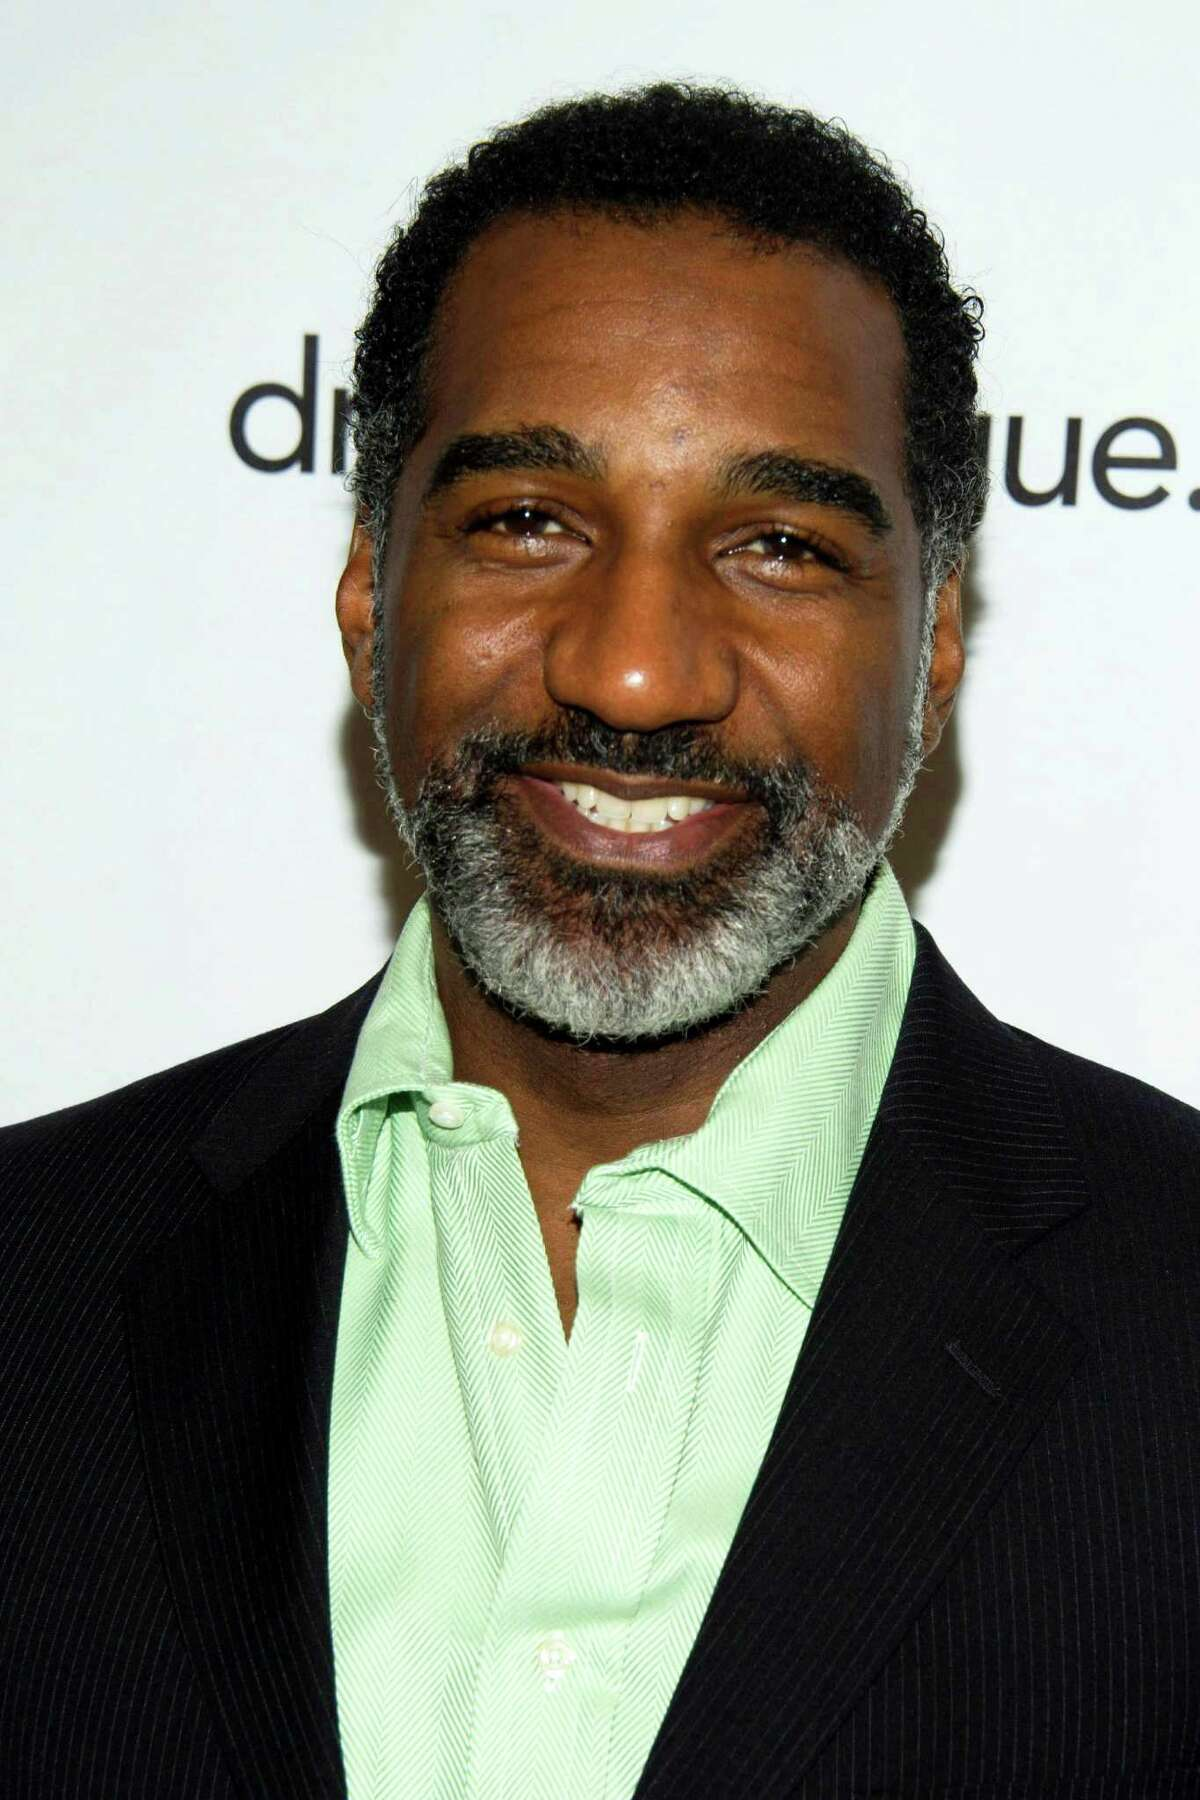 """FILE - This May 18, 2012 file photo shows actor Norm Lewis at the 78th Annual Drama League Awards in New York. Lewis has been tapped to be Broadway?s next Phantom in the megahit """"The Phantom of the Opera,"""" a move that makes him the first African American to slip behind the famous mask. (AP Photo/Charles Sykes, File)"""